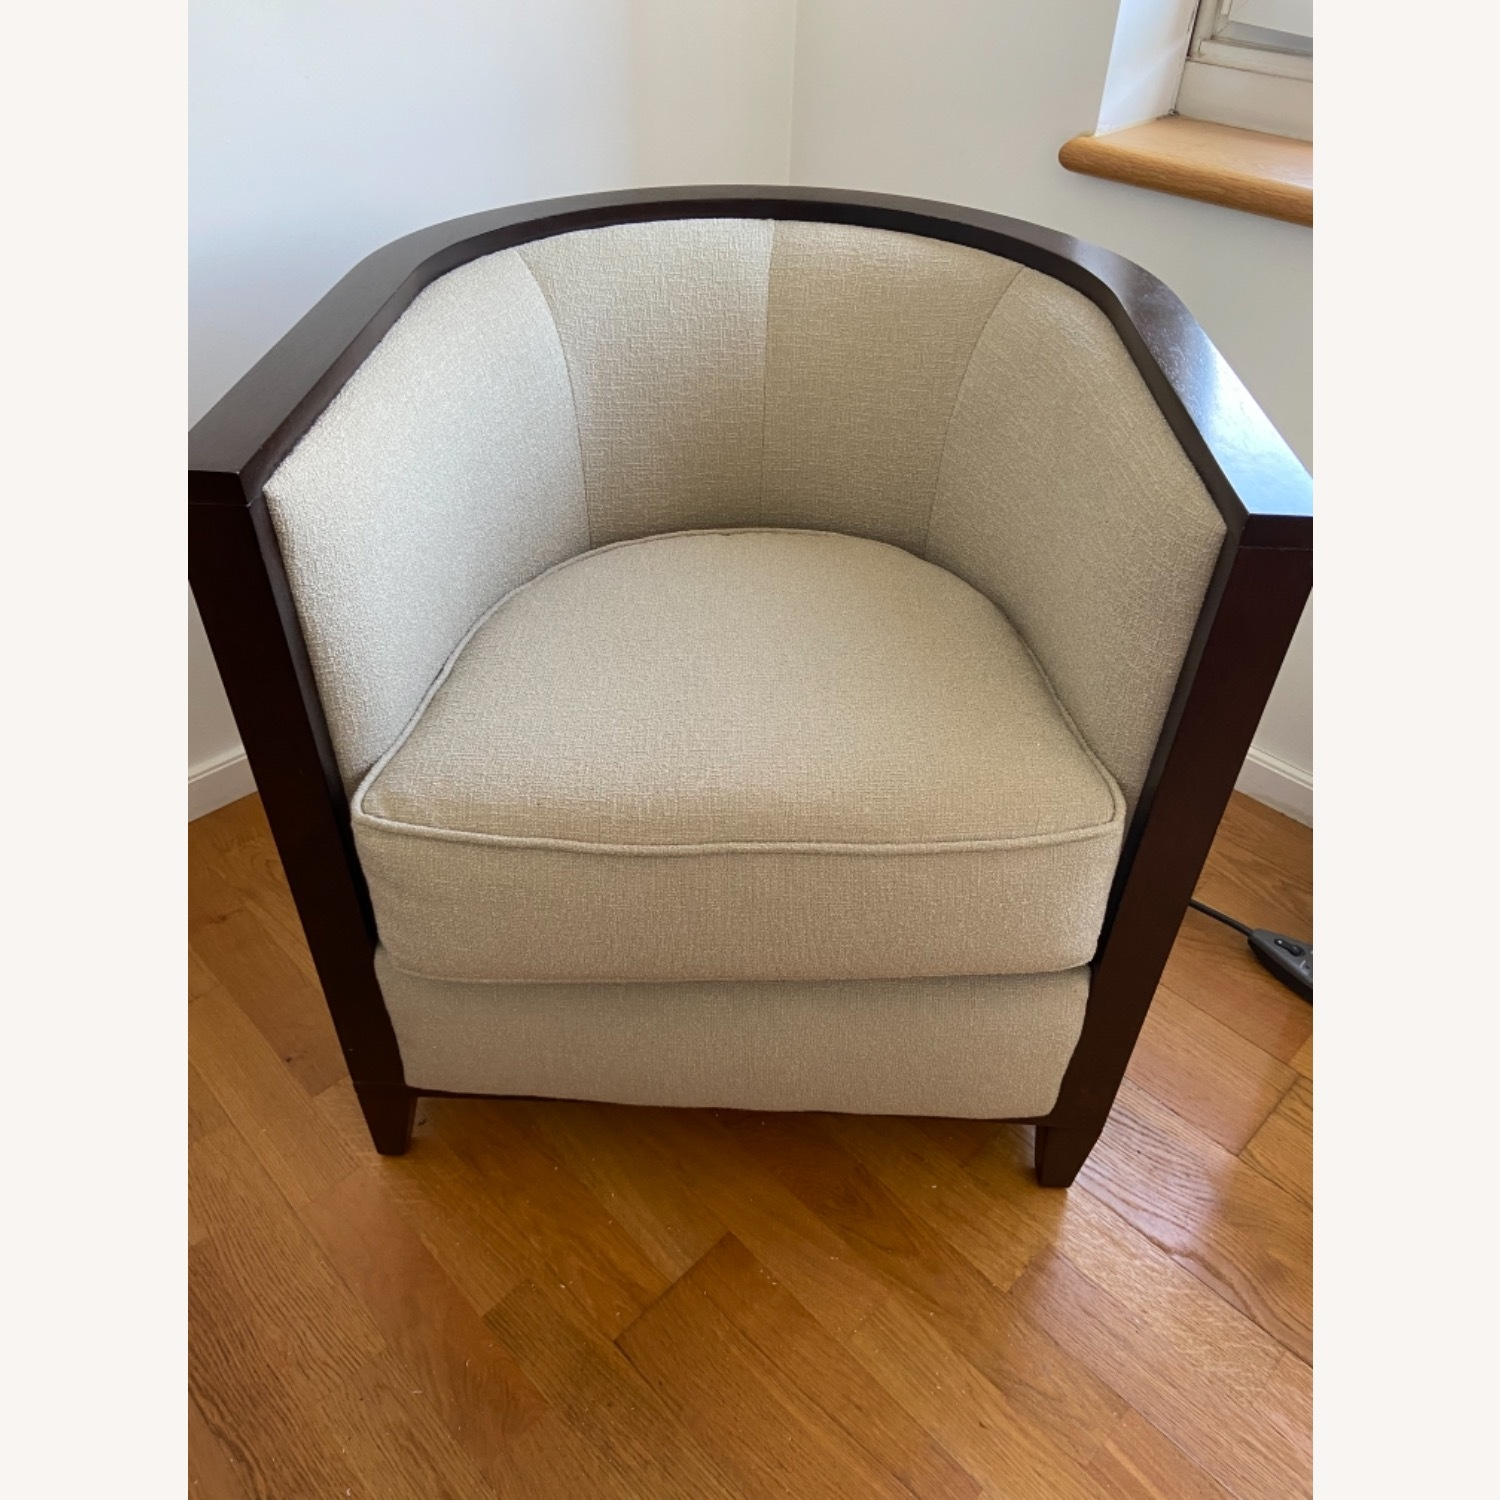 Better by Design Made USA Chair - image-5